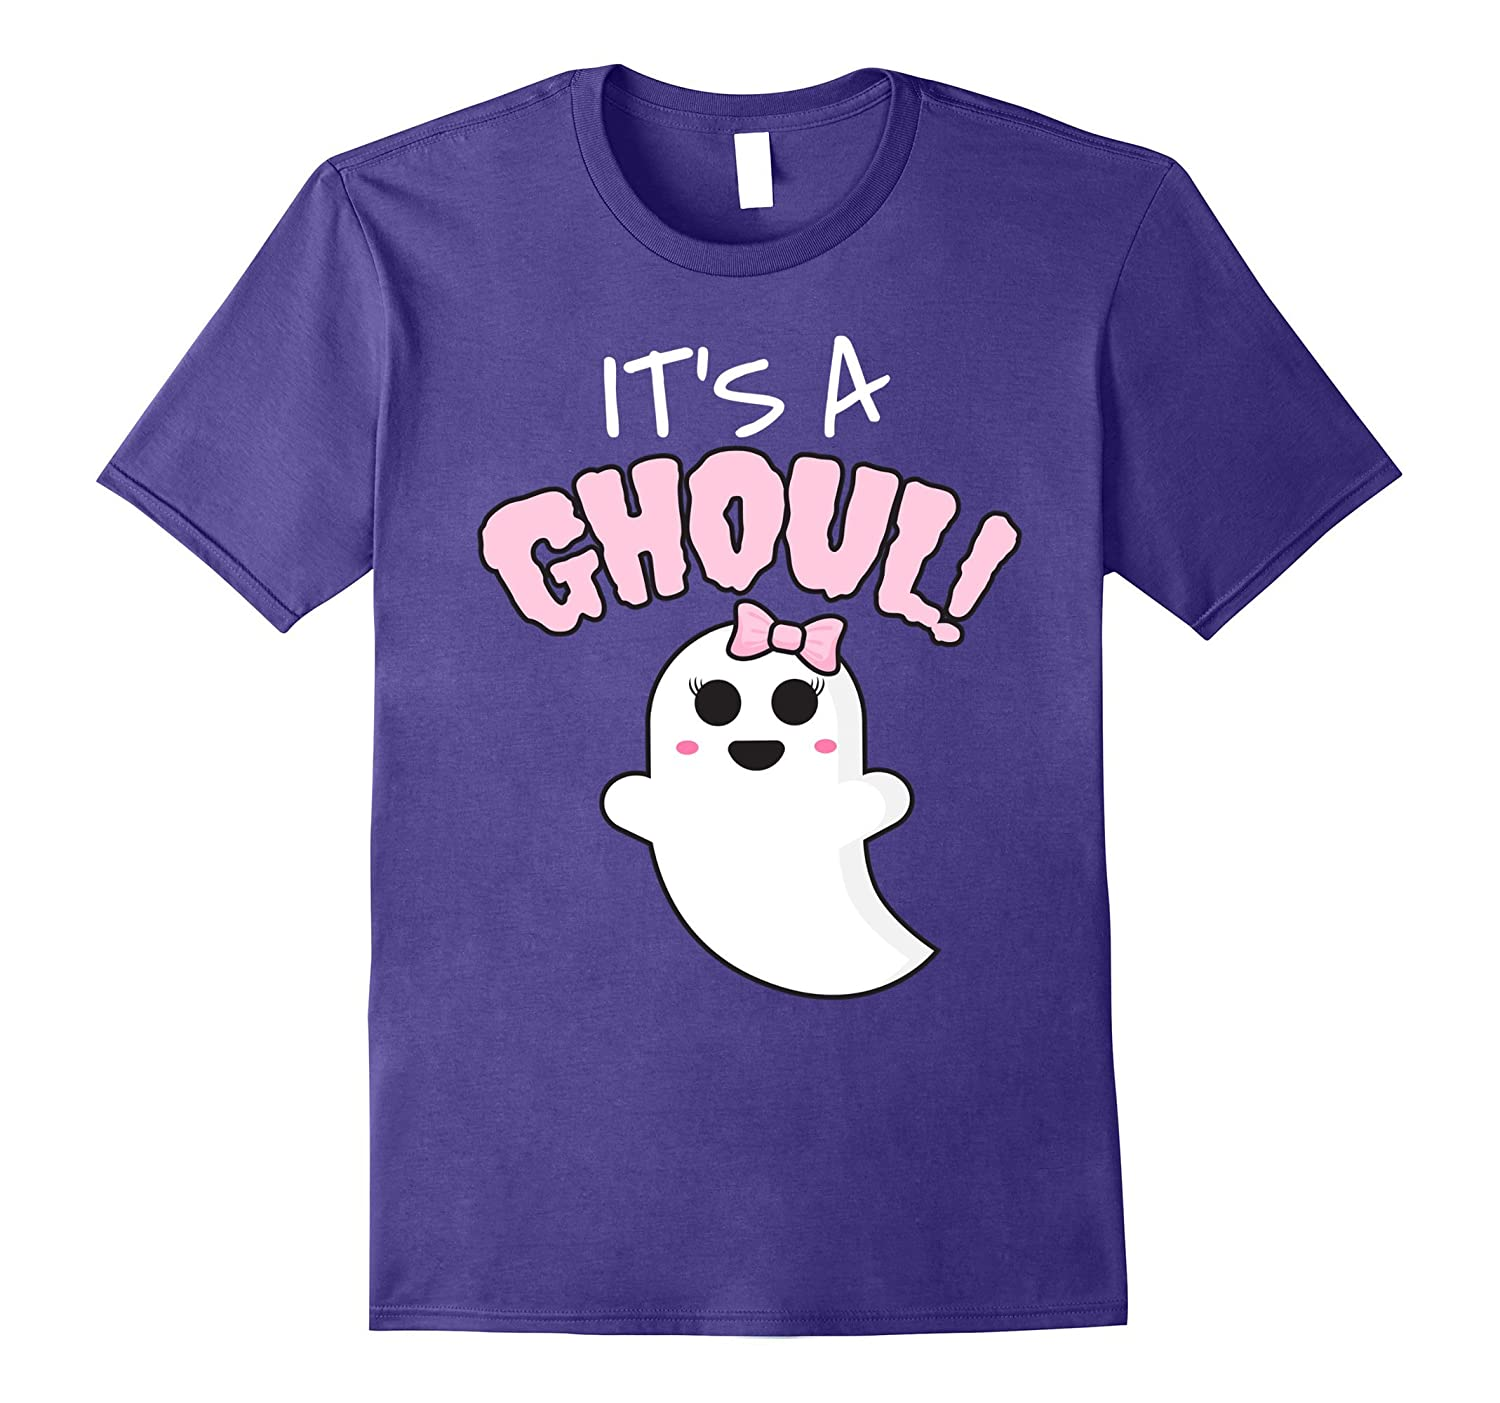 Its A Ghoul Halloween Gender Reveal Shirt Girl Shirt-TJ